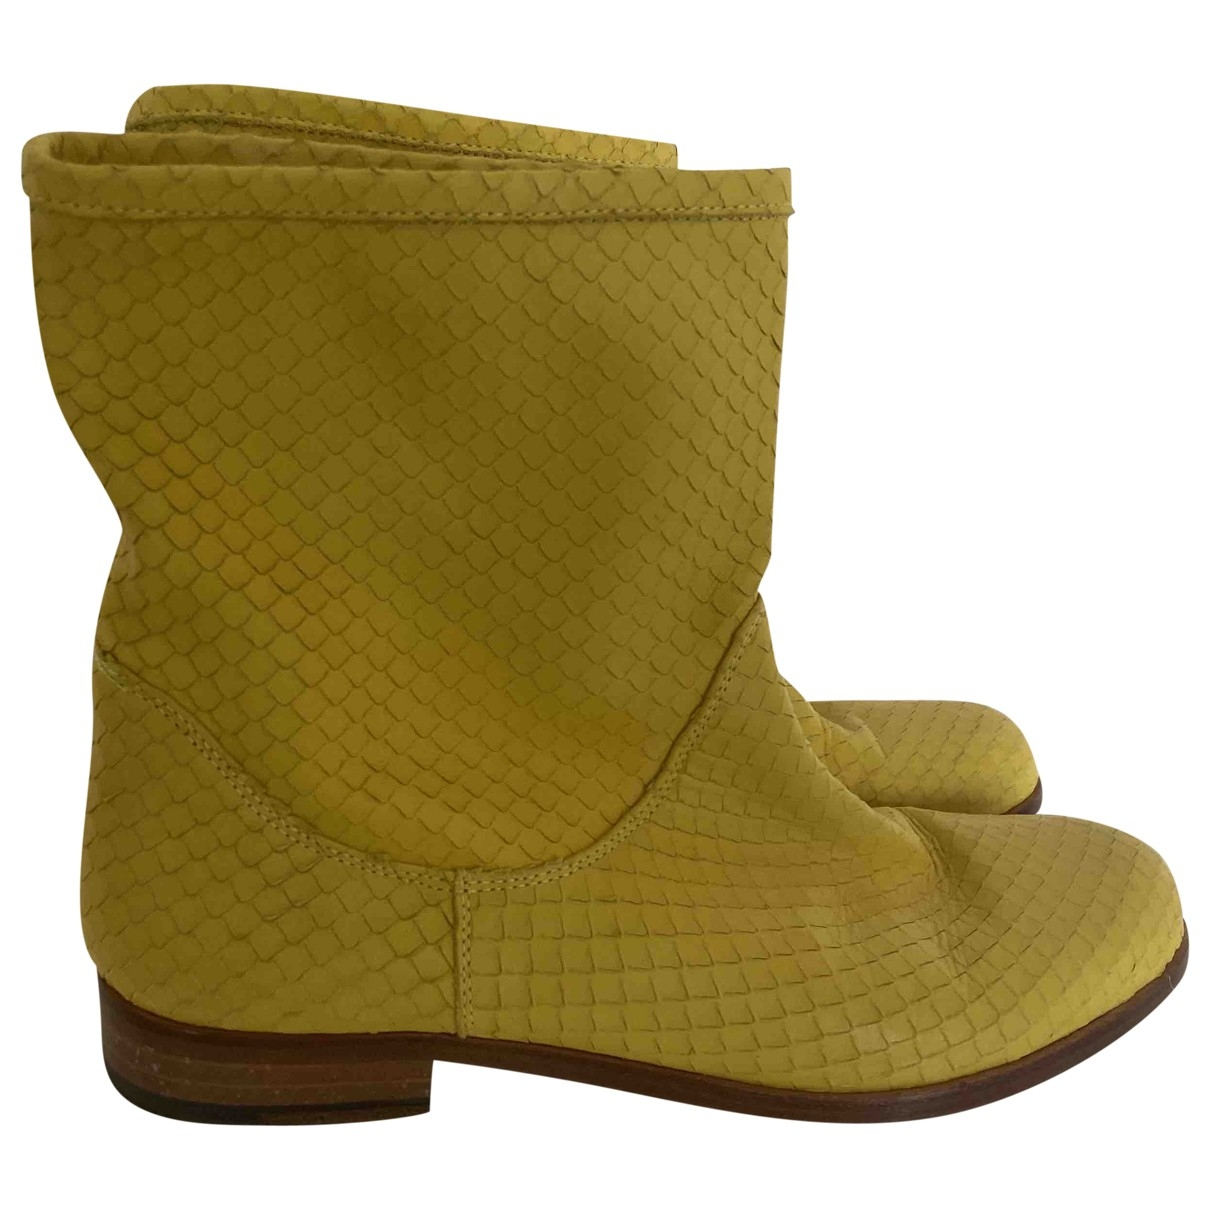 Pollini \N Yellow Leather Boots for Women 38.5 EU